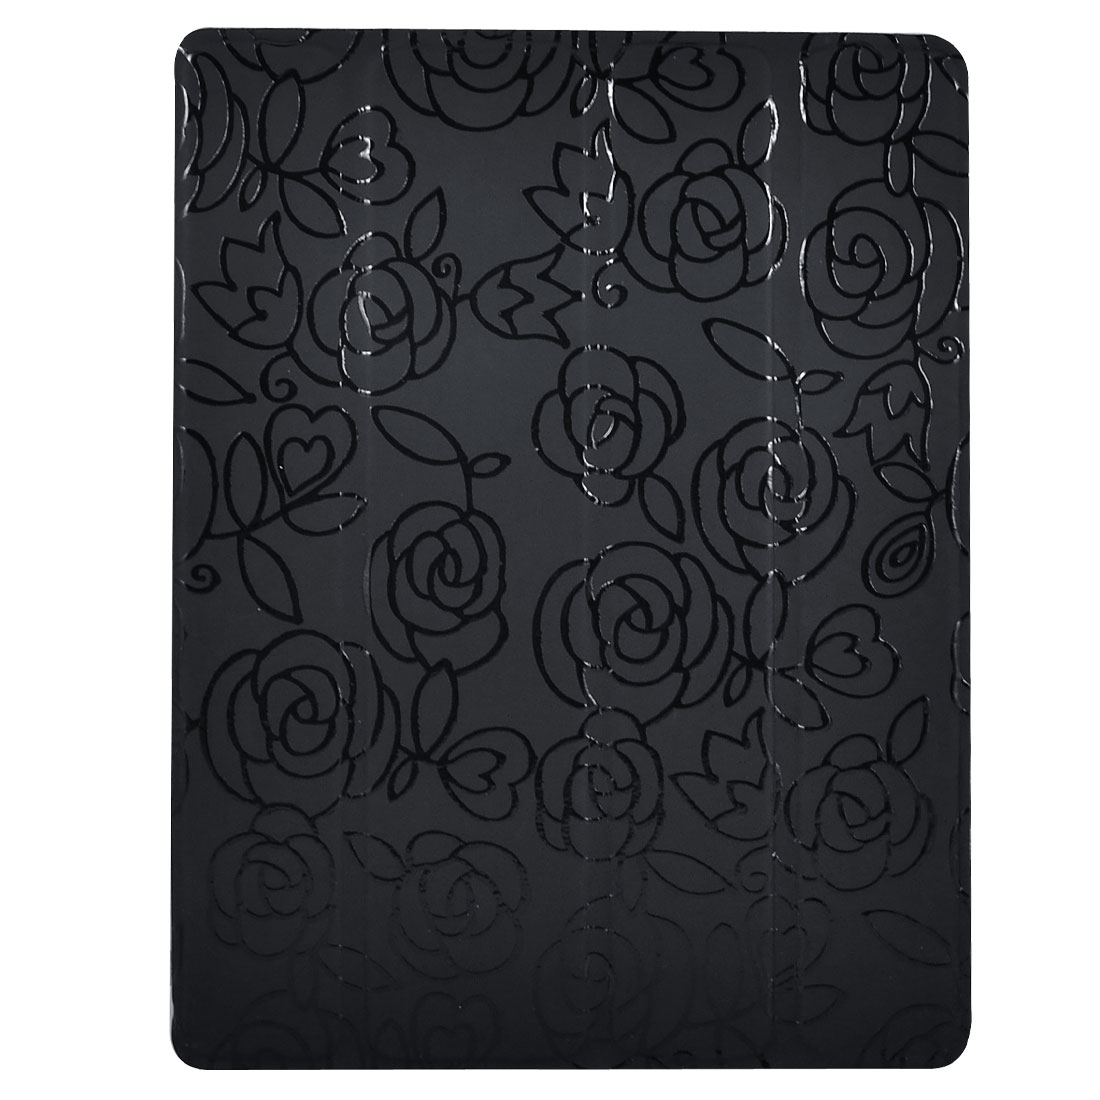 Black Flower Faux Leather Tablet Stand Case Folio Cover for Apple iPad 2